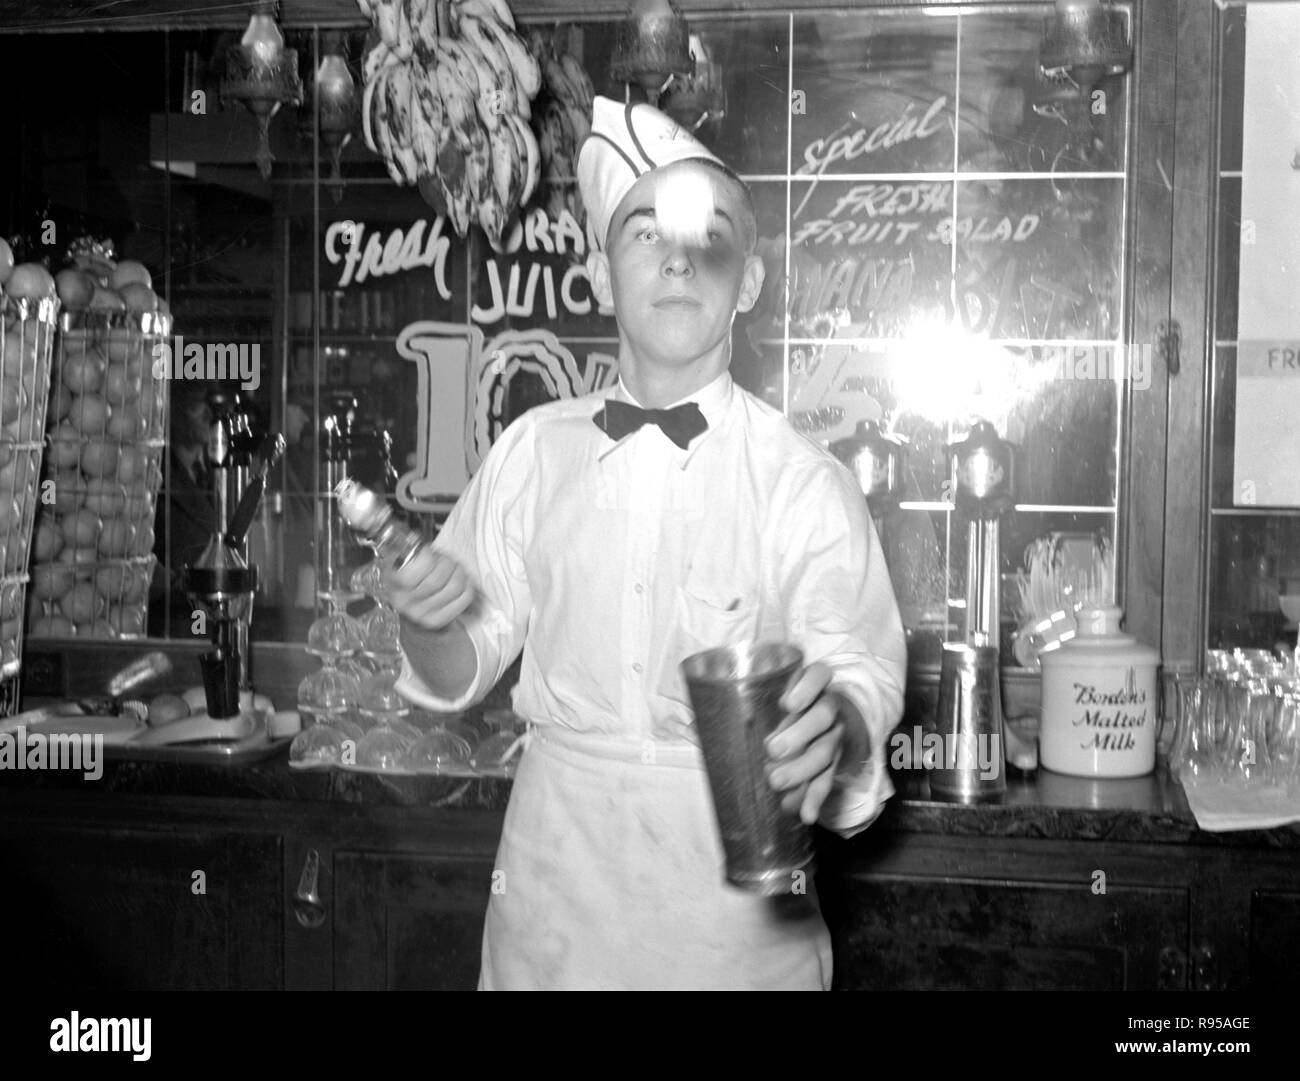 Soda jerker flipping ice cream into malted milk shakes. Corpus Christi, Texas. Circa  February 1939.  Photograph by Russell Lee/FSA (1903-1986) - Stock Image